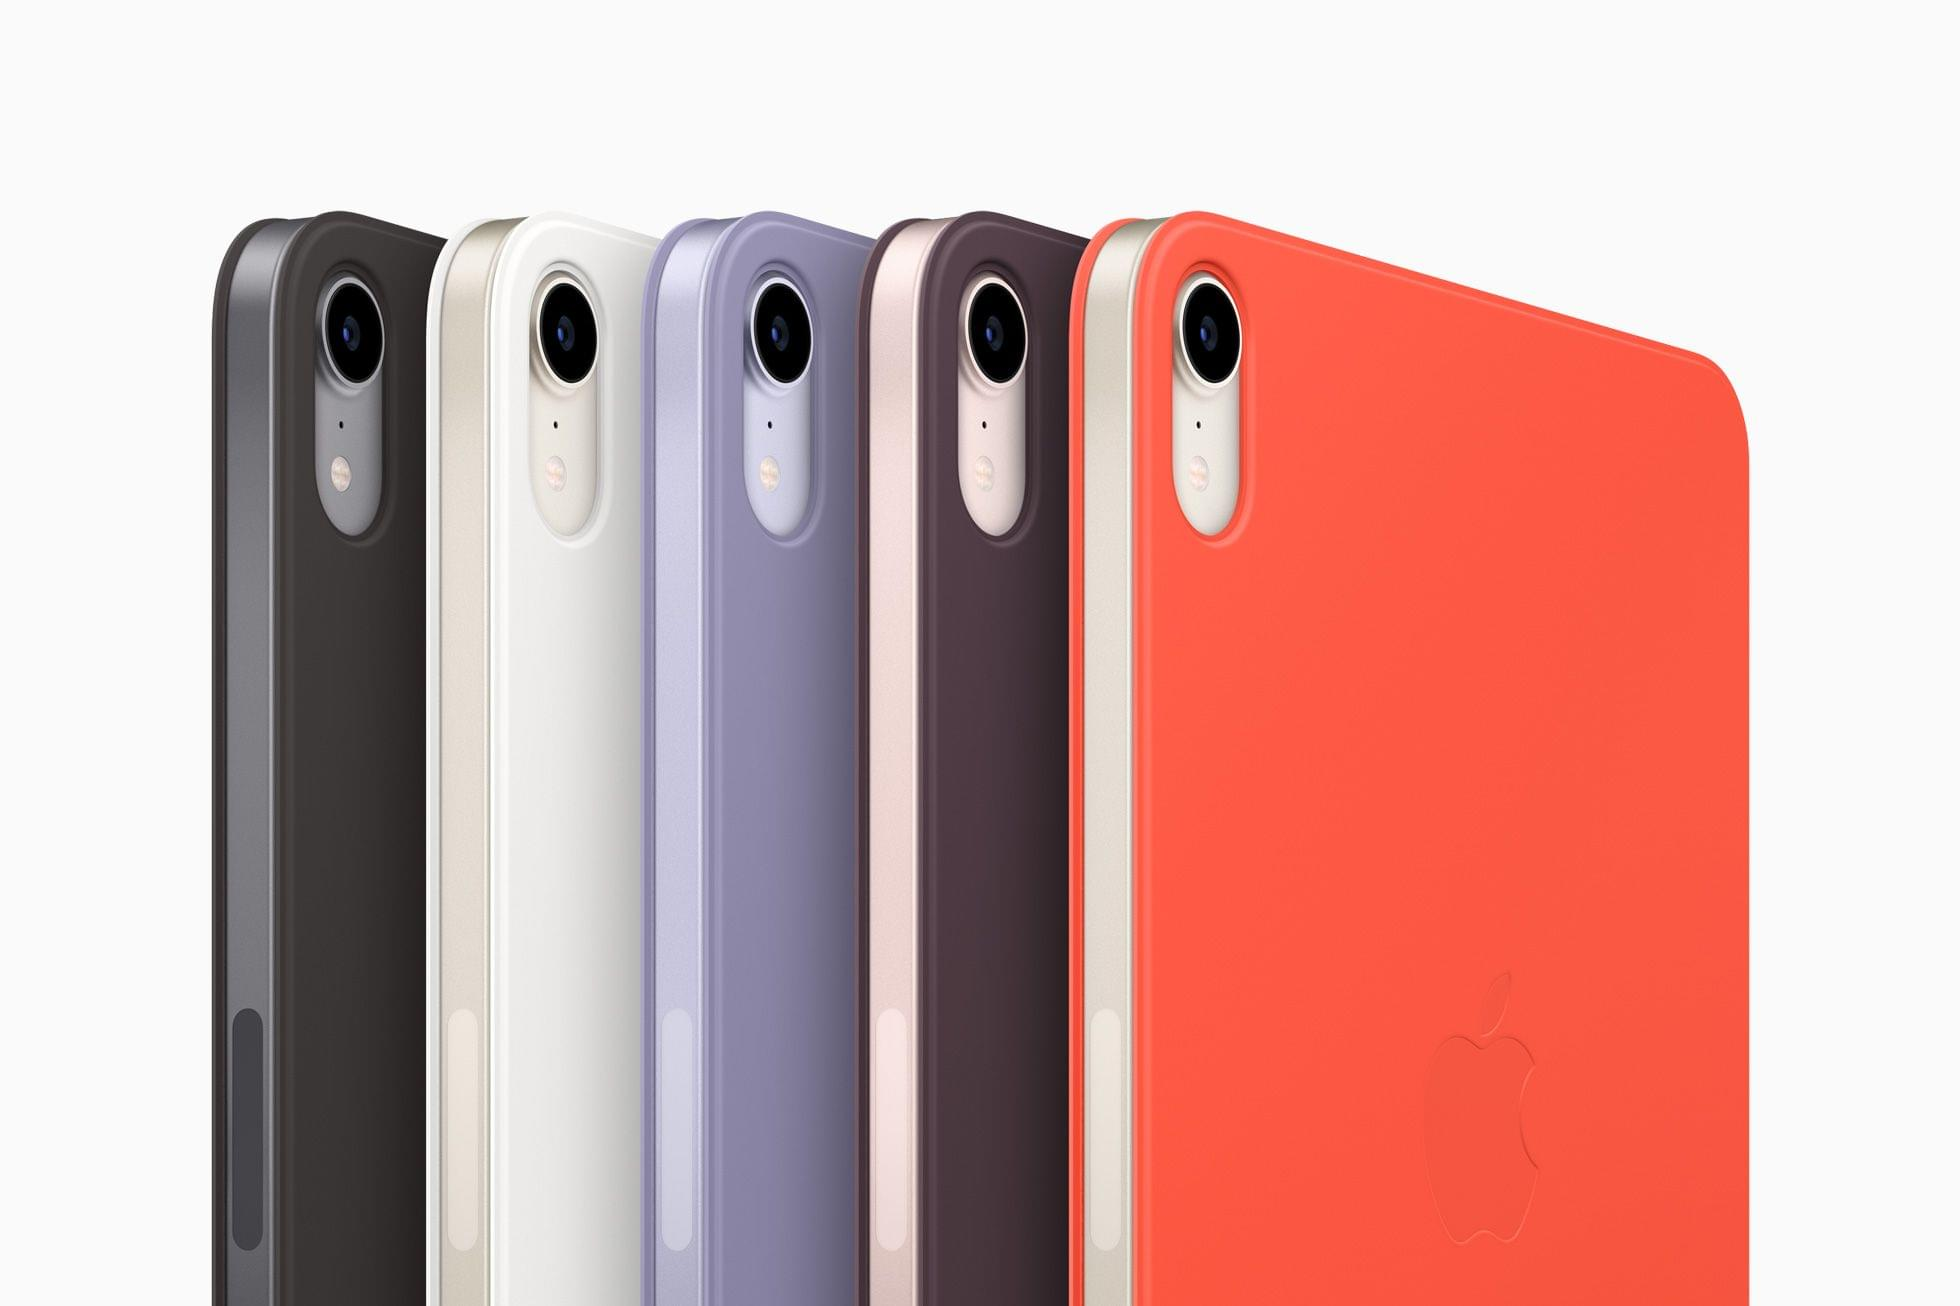 There are new Smart Folio cases for the iPad mini too.